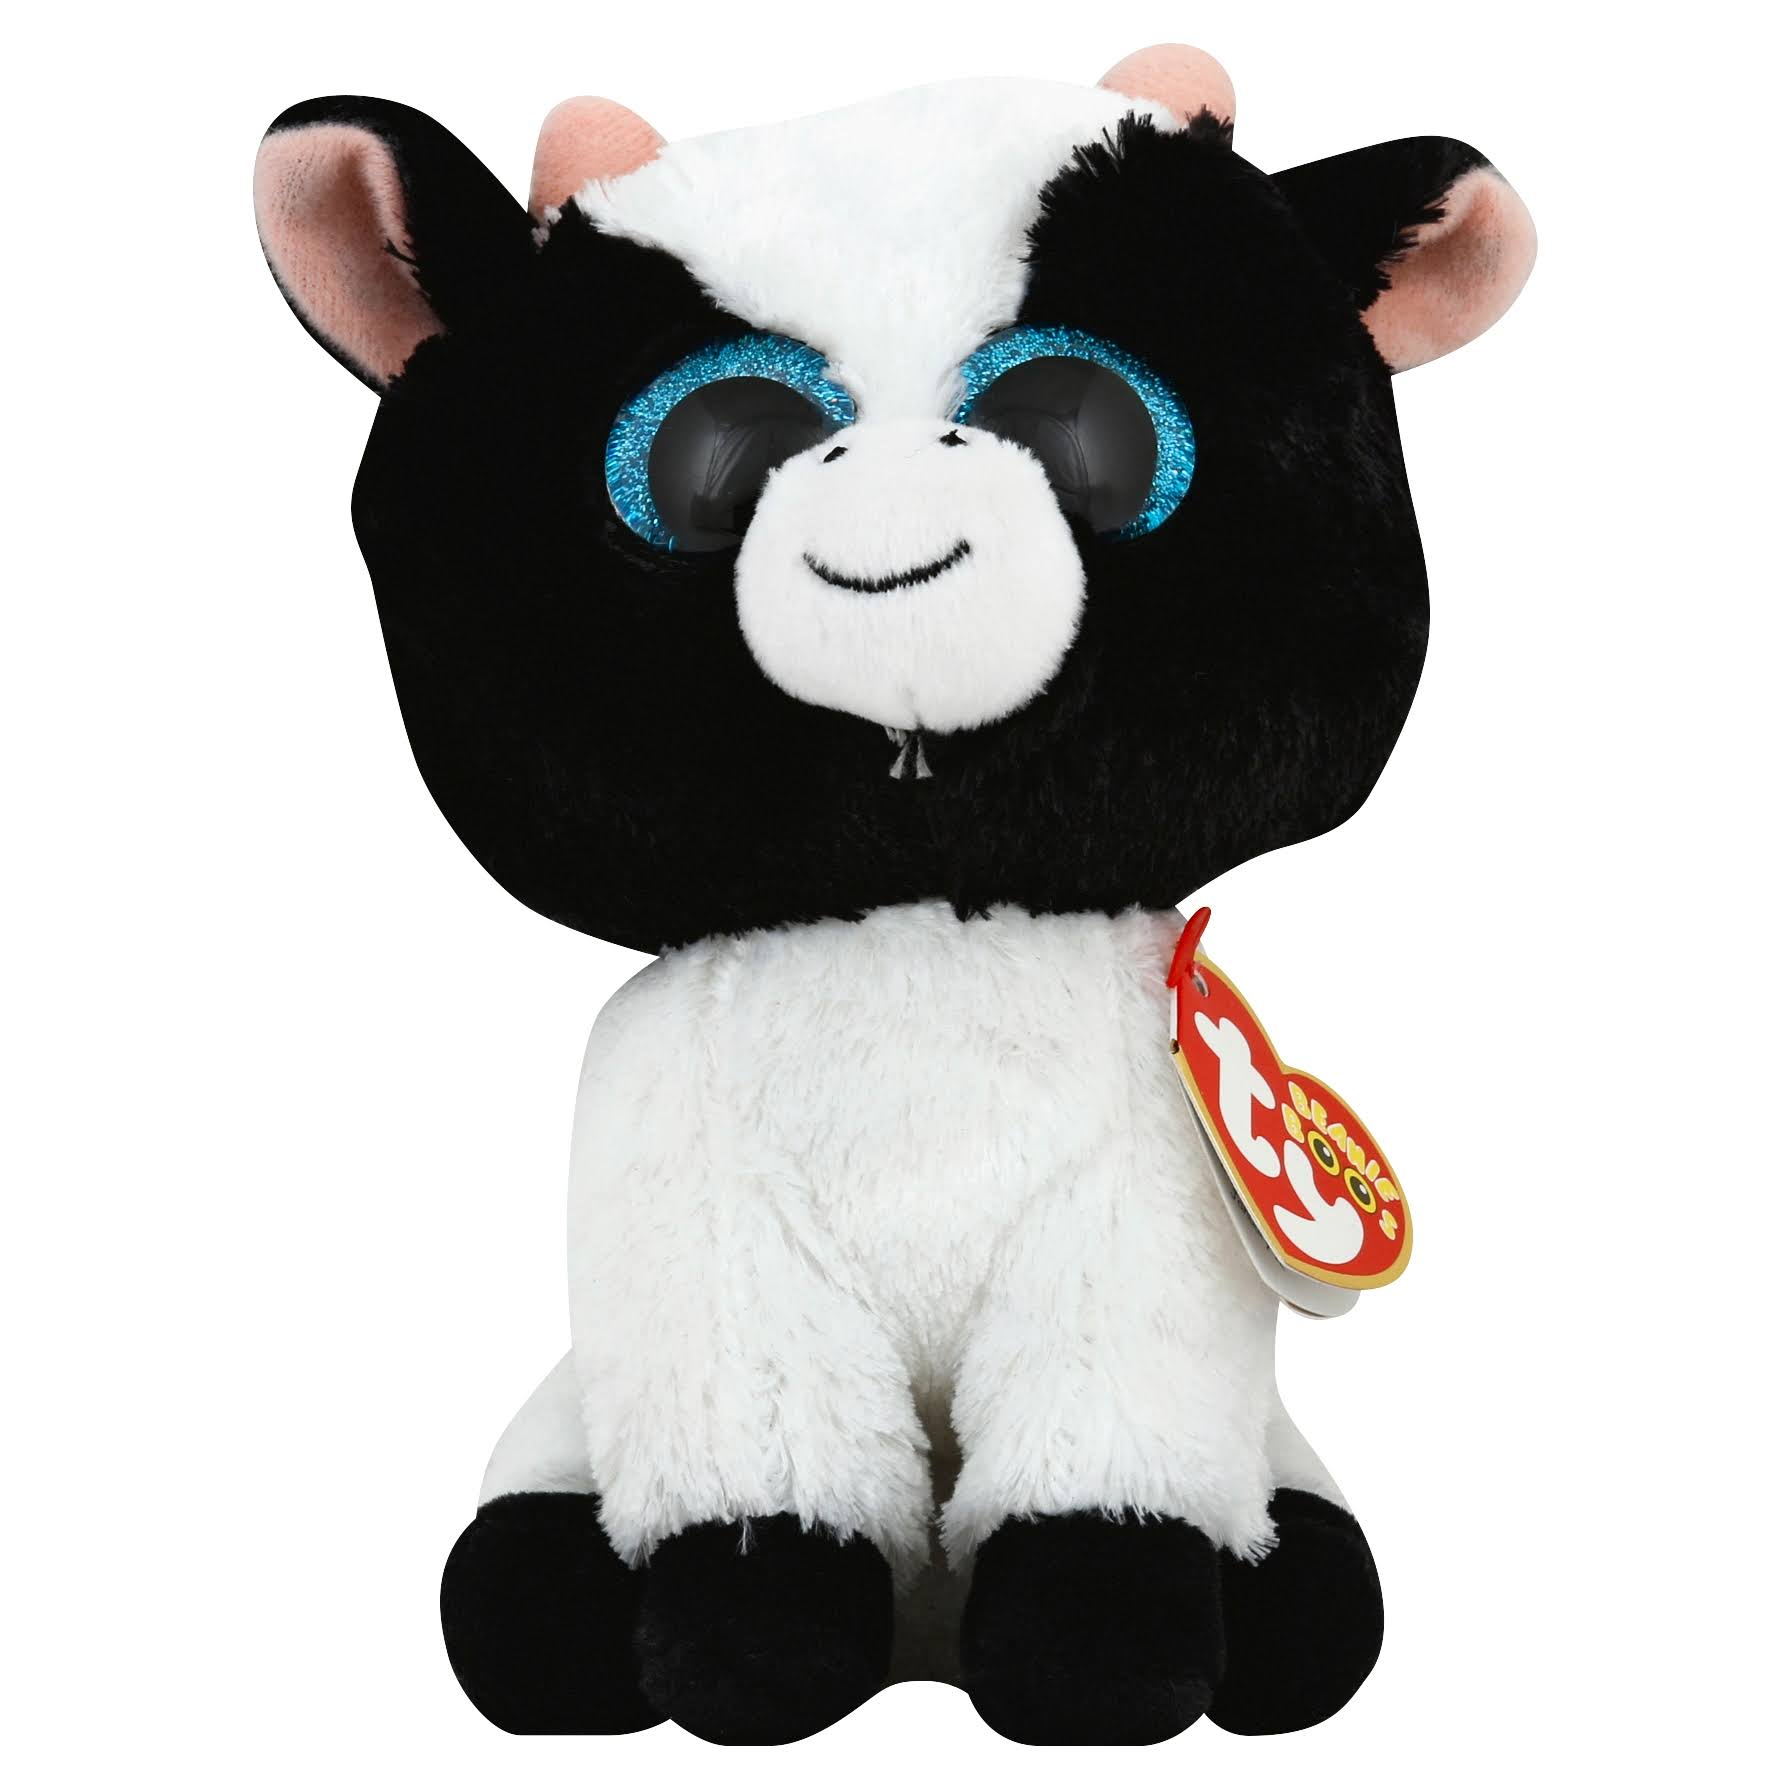 Ty Beanie Boos Butter The Black and White Cow Plush Toy - 6""